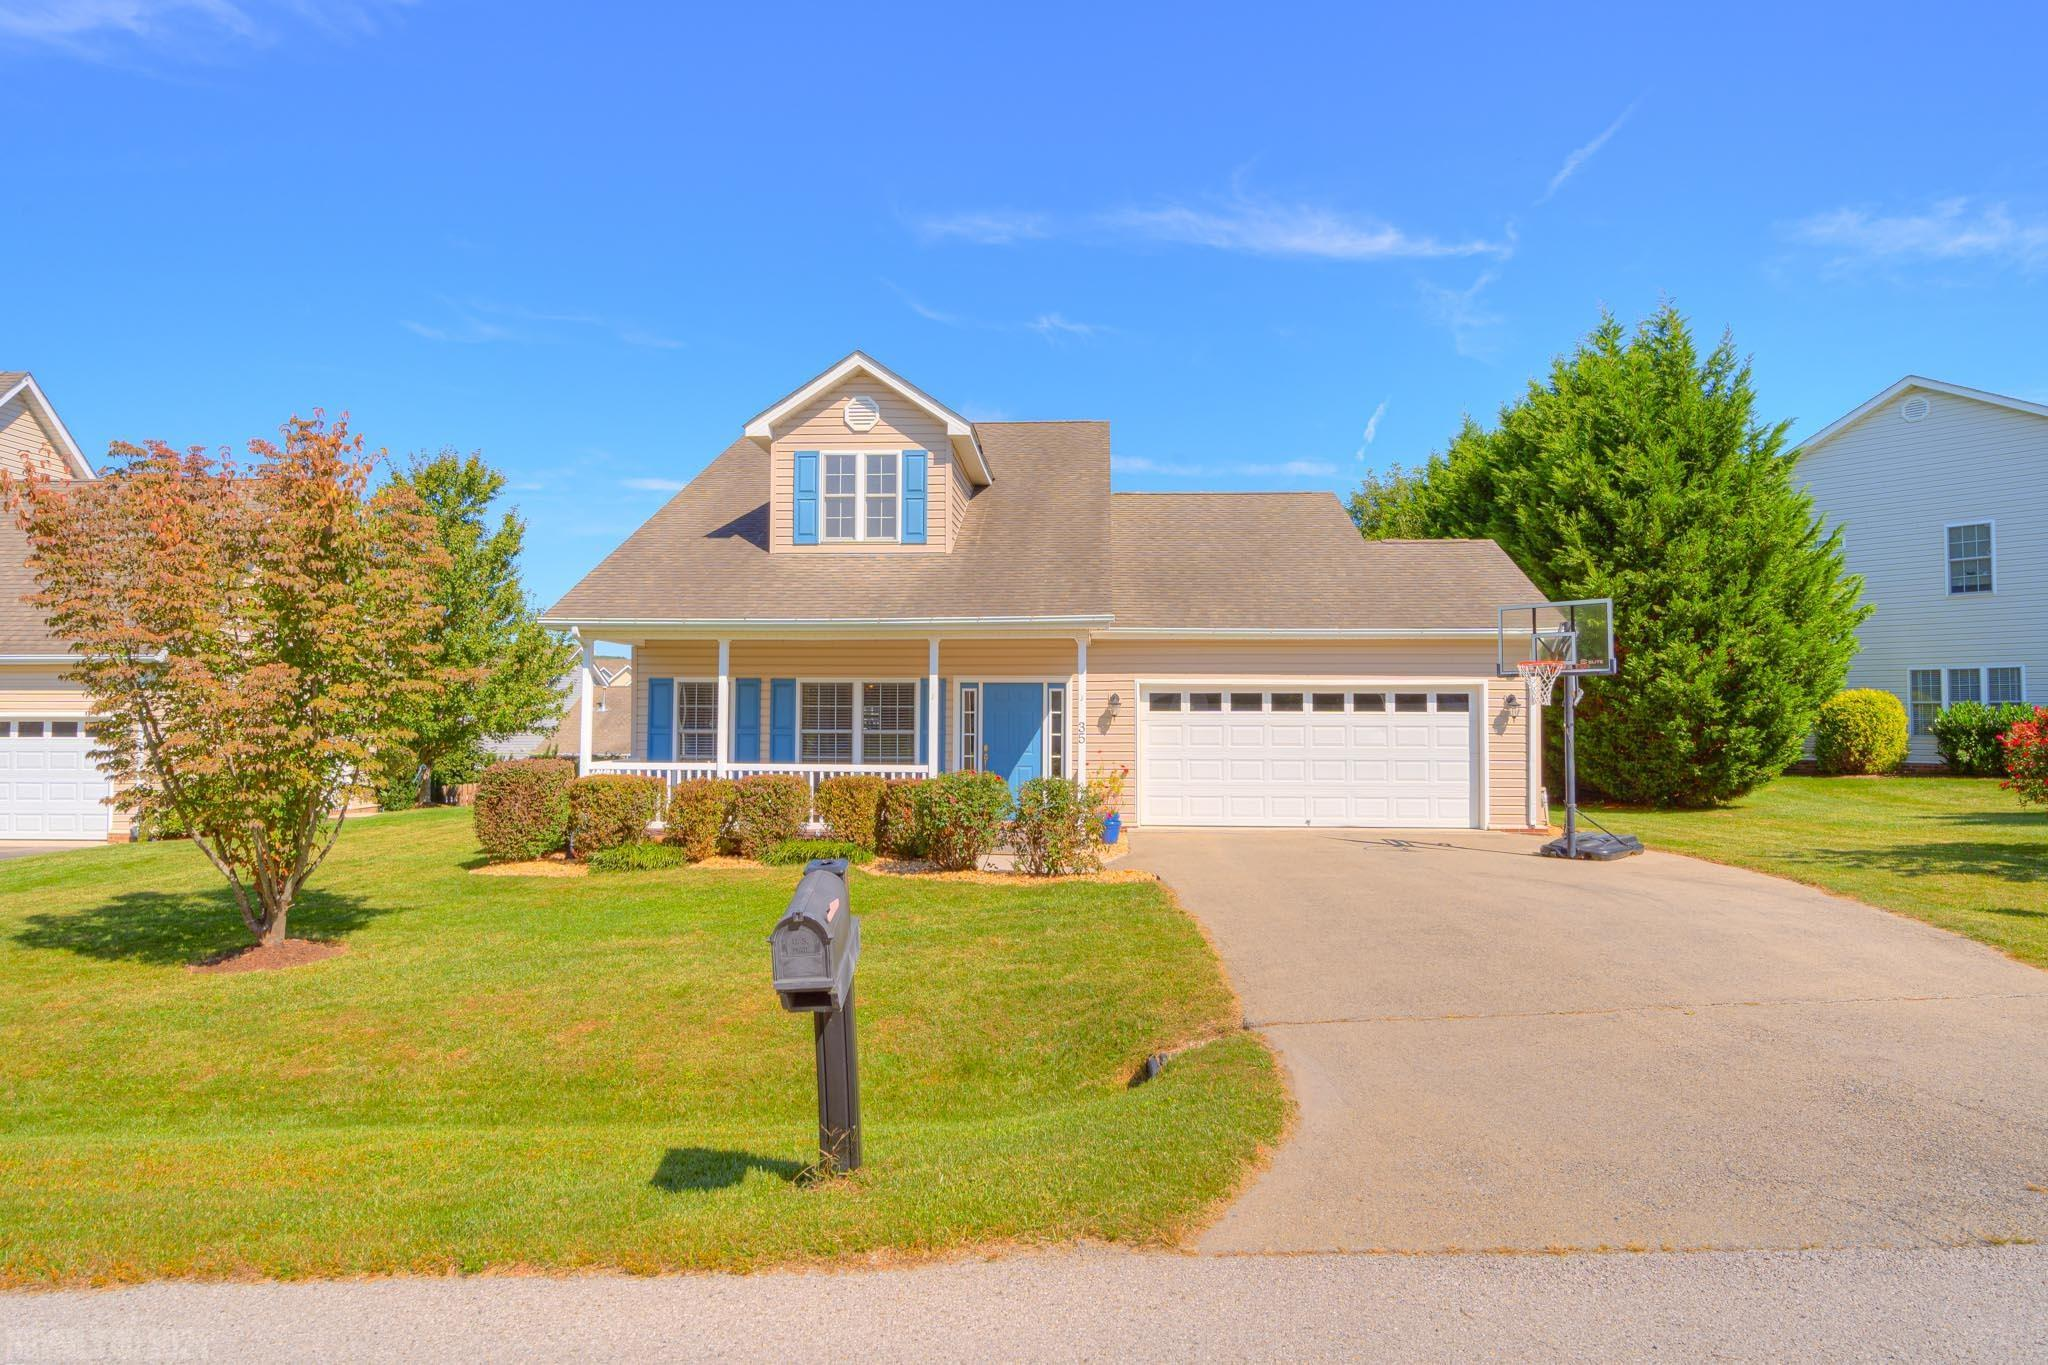 Whether it's a leisurely bike ride on the Huckleberry Trail, an afternoon shopping, or dinner at Christiansburg's newest restaurants, it's within just a couple of minutes from 35 Katie Lane. Inside this well-appointed four-bedroom home you'll find main level living with vaulted ceilings and a large kitchen with granite counters and knee wall, downlit cabinets, and stainless appliances. The main level bedroom has a vaulted ceiling, with dual vanities in the bath, while upstairs there are three bedrooms and a bath. Whether you're inside this four bedroom home, or outside enjoying the fenced backyard and quiet cul-de-sac location, there's something for everyone here.